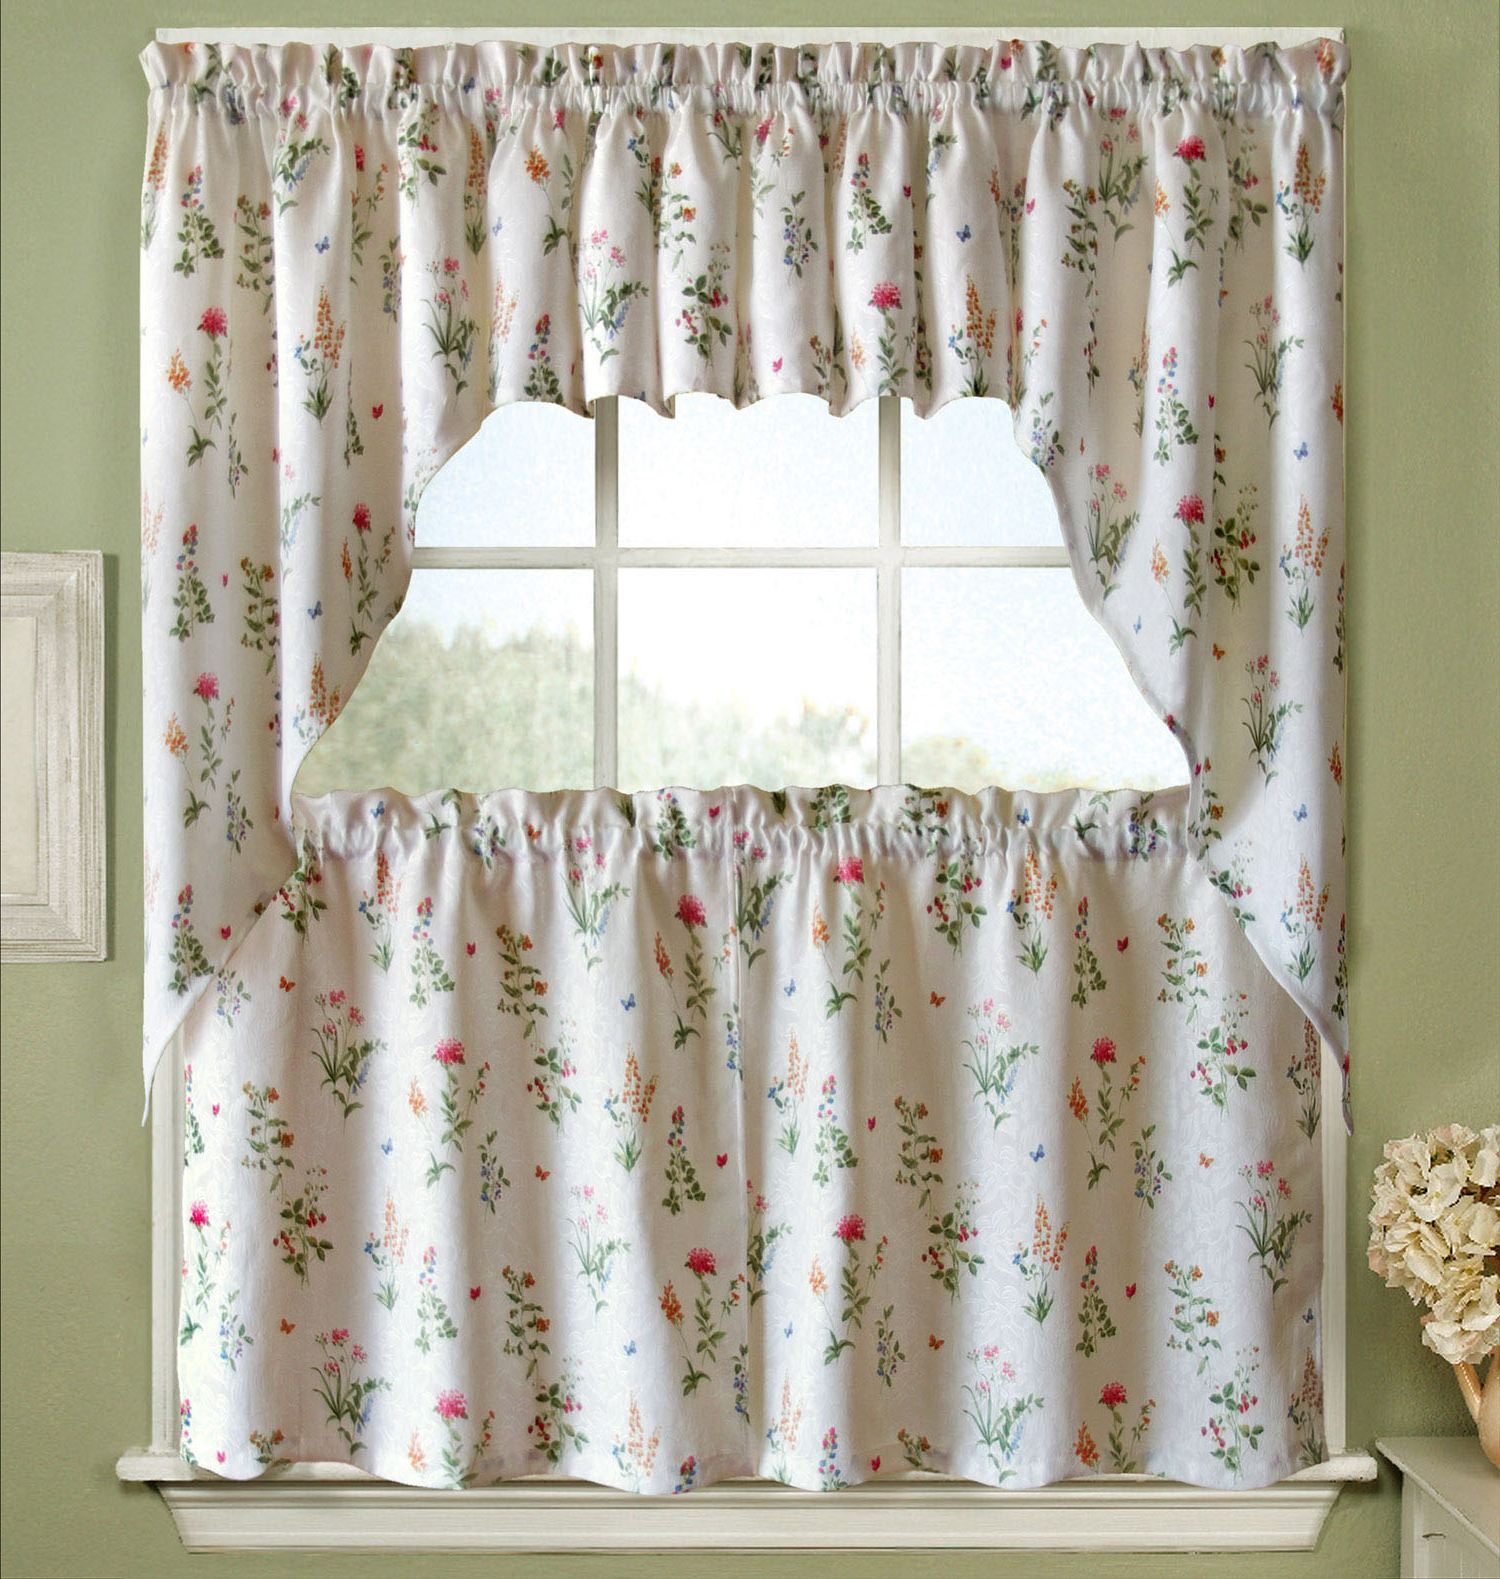 "Most Current Details About Jacquard Kitchen Curtain 36"" Tier, Swag, Valance Set English Garden Floral White With Cotton Blend Ivy Floral Tier Curtain And Swag Sets (Gallery 3 of 20)"